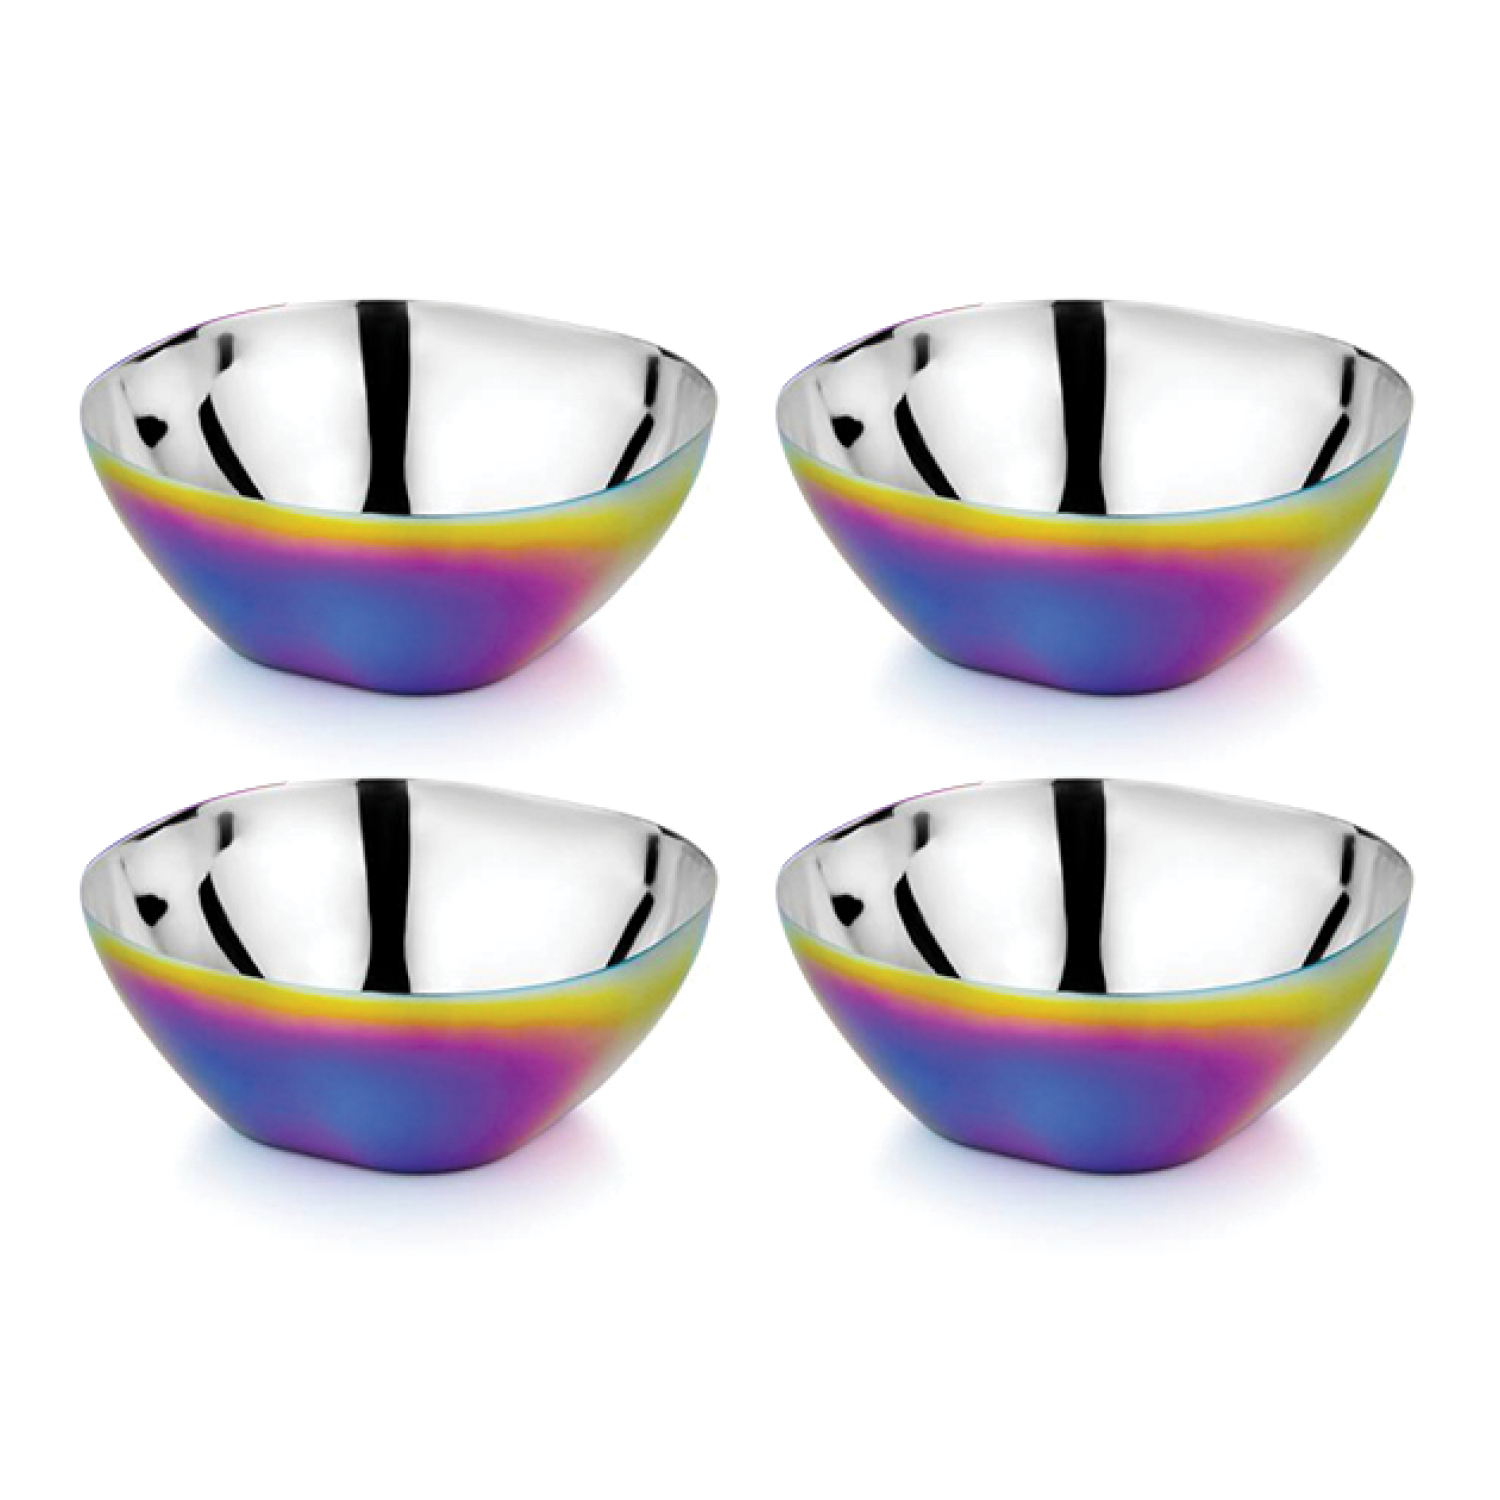 Rainbow kids bowls